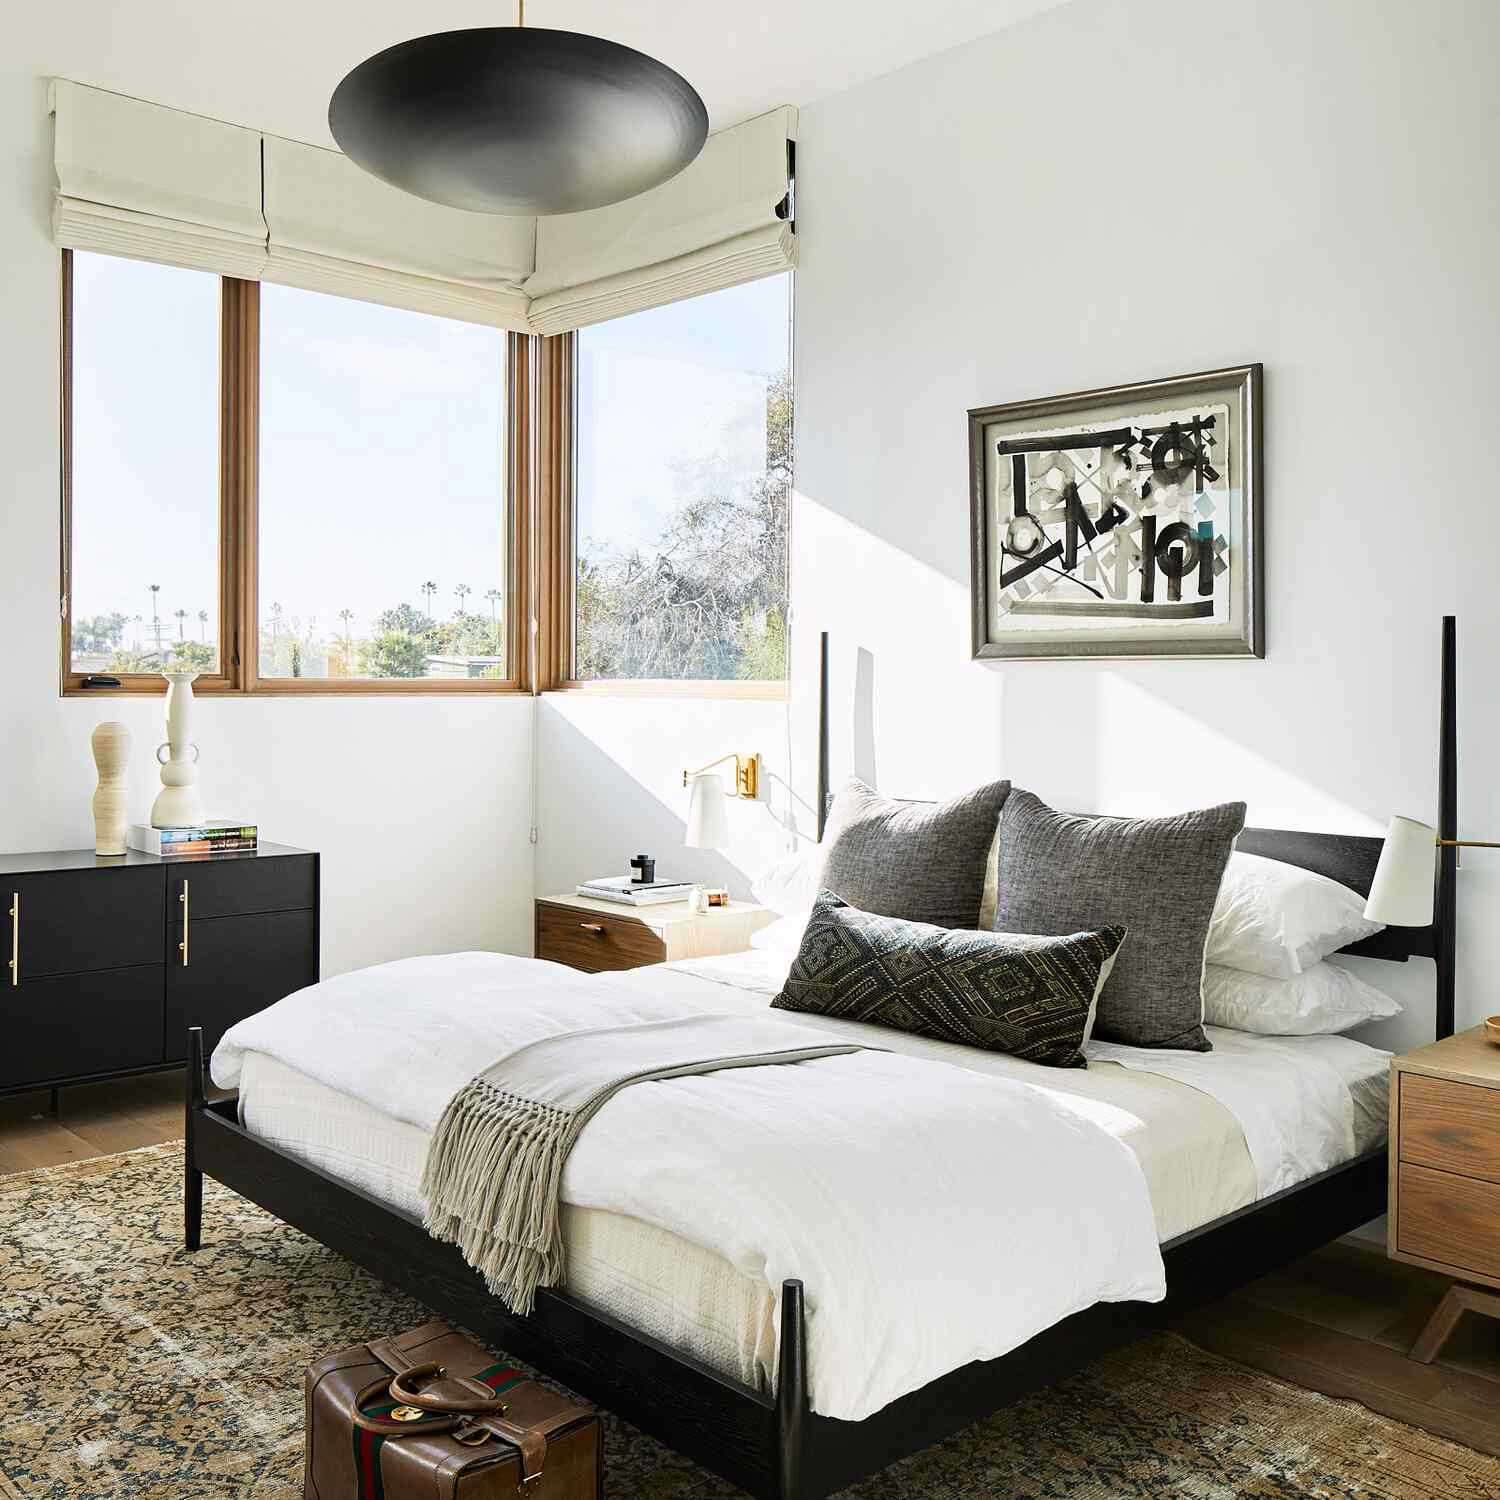 A bedroom filled with ivory, black, white, and other neutrals